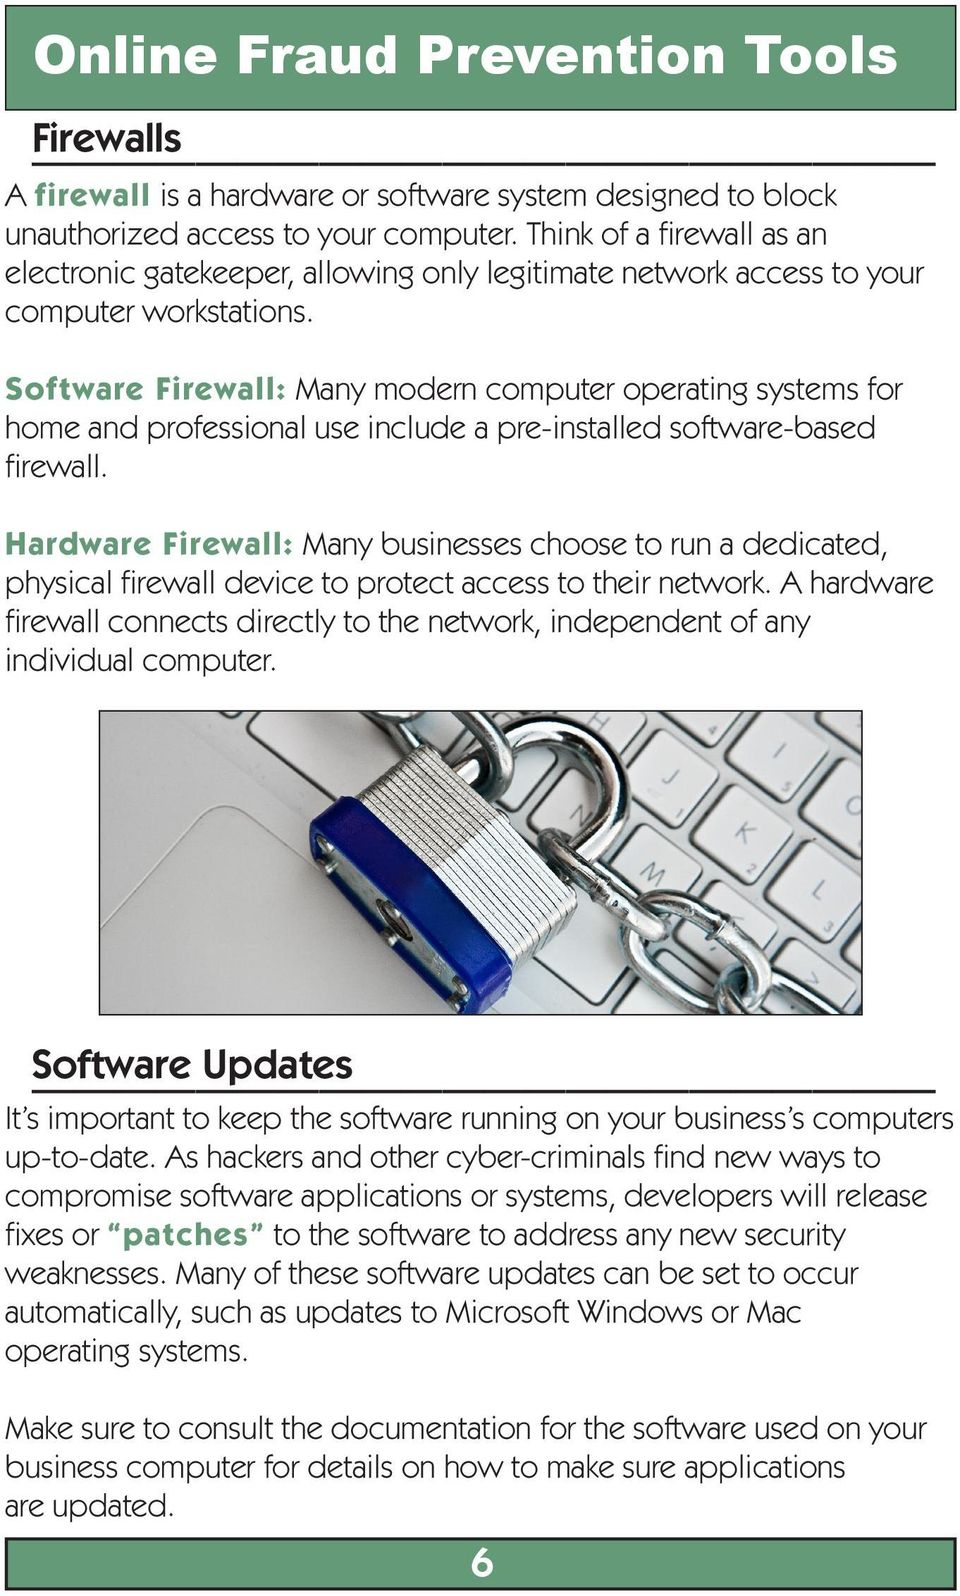 Software Firewall: Many modern computer operating systems for home and professional use include a pre-installed software-based firewall.